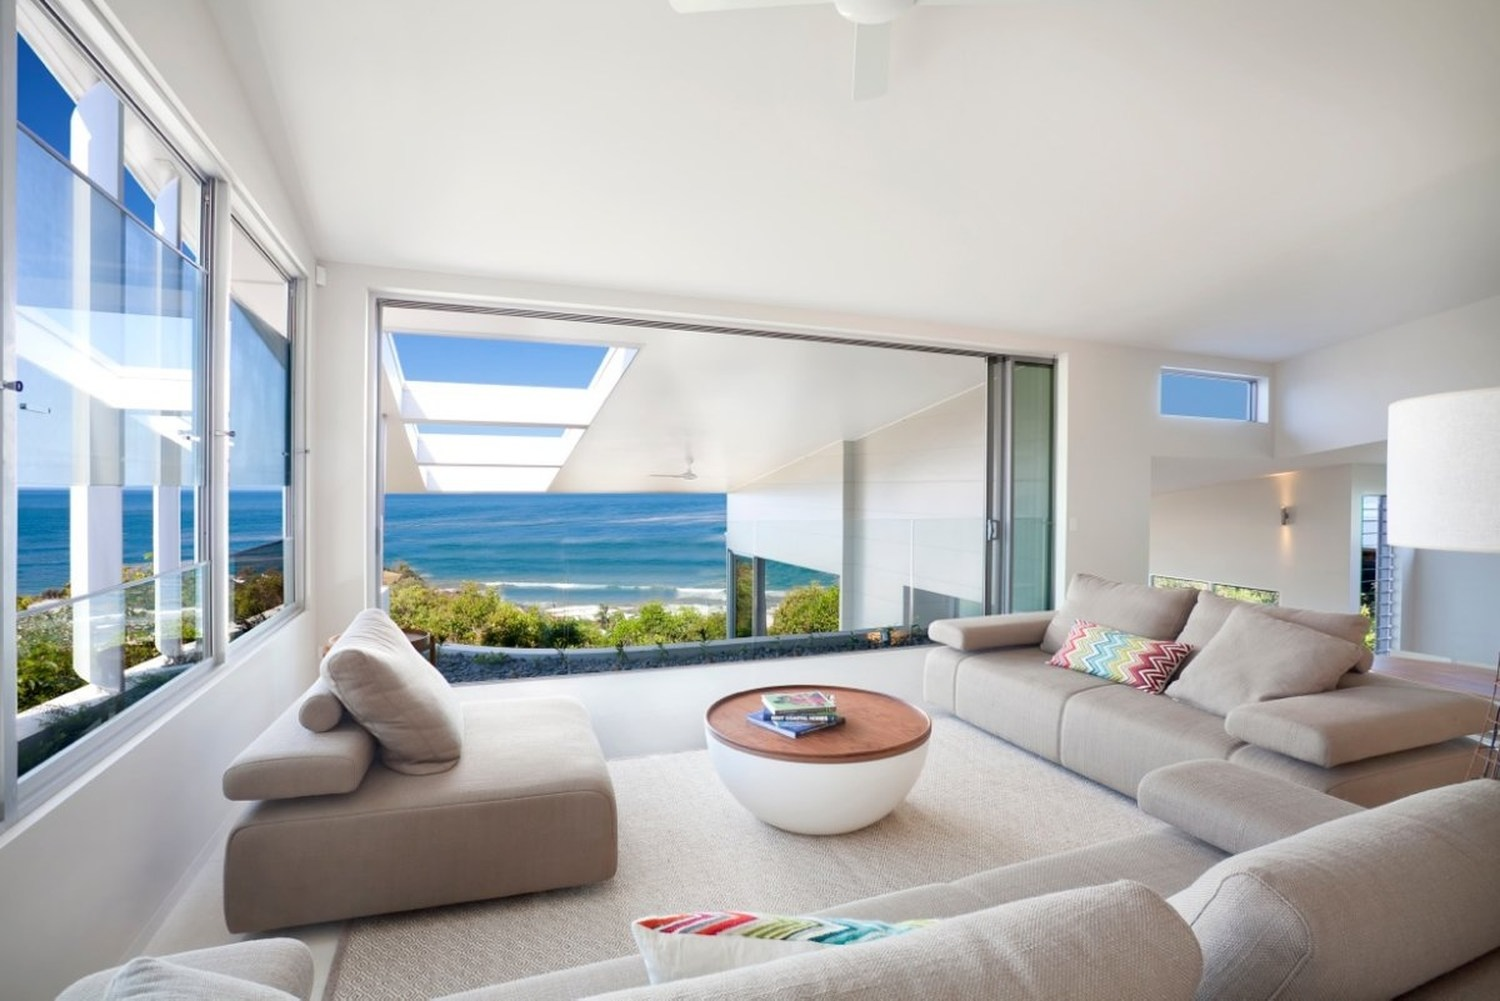 Coolum Bays Beach House By Aboda Design Group Karmatrendz